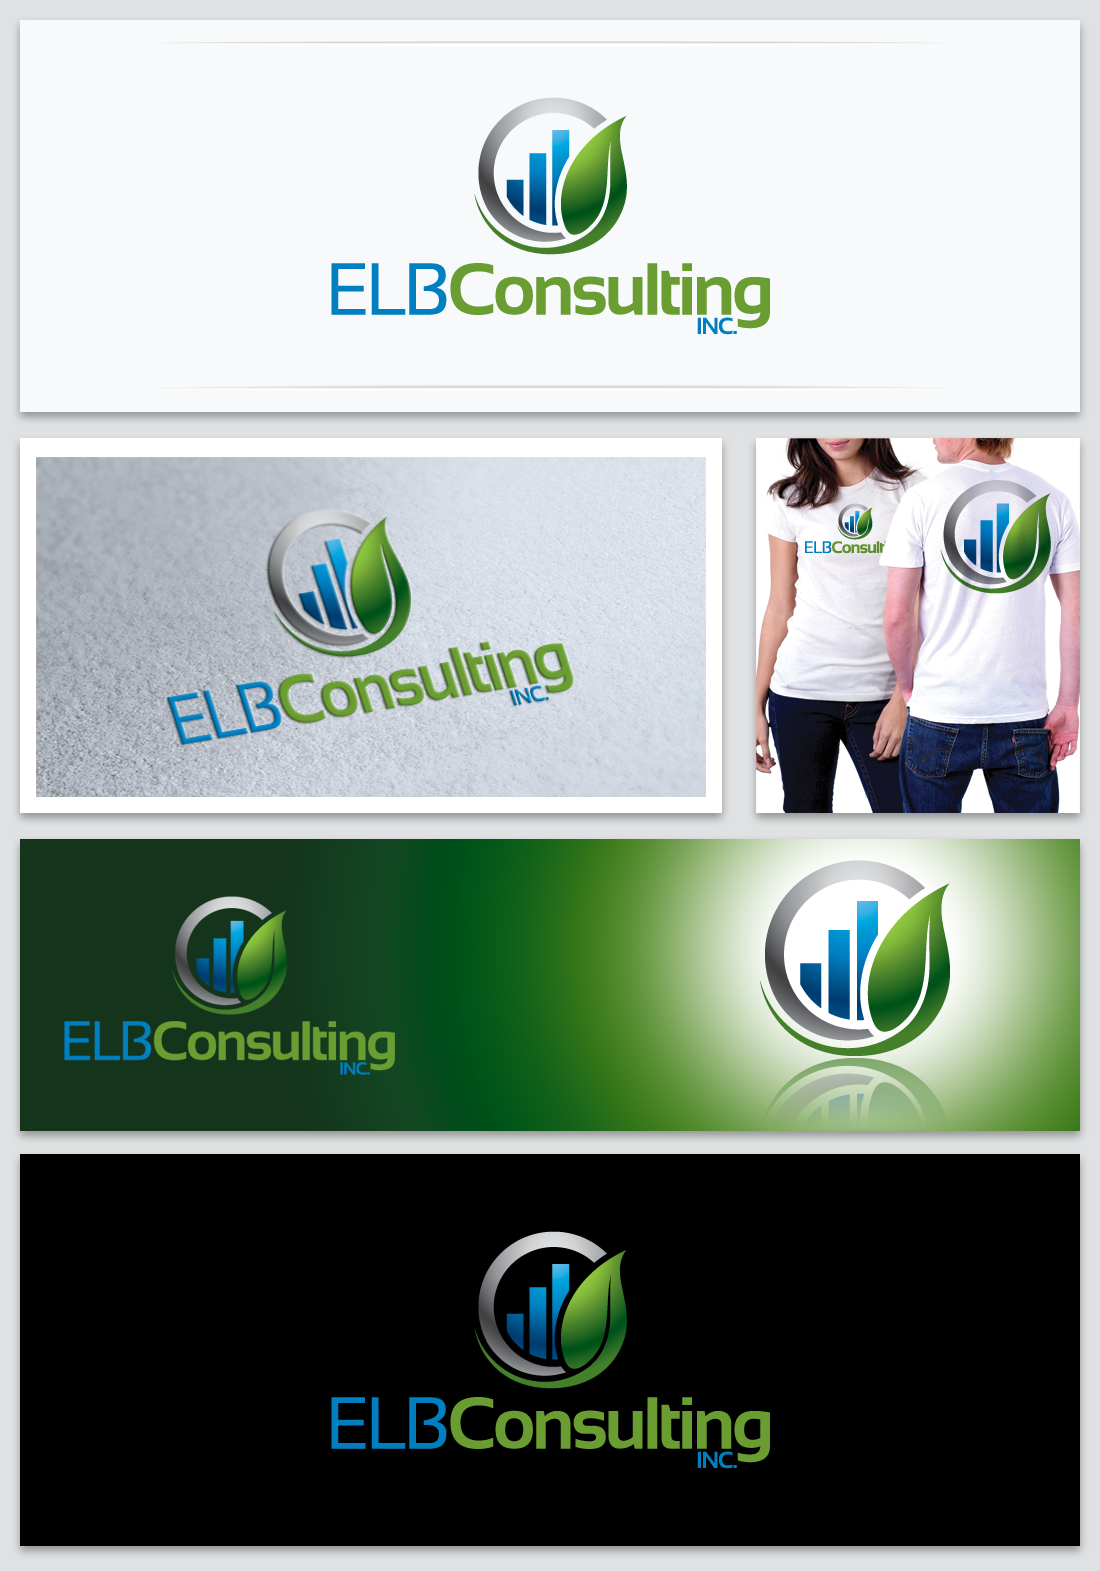 Create a NEW slick logo for our growing consulting firm today!